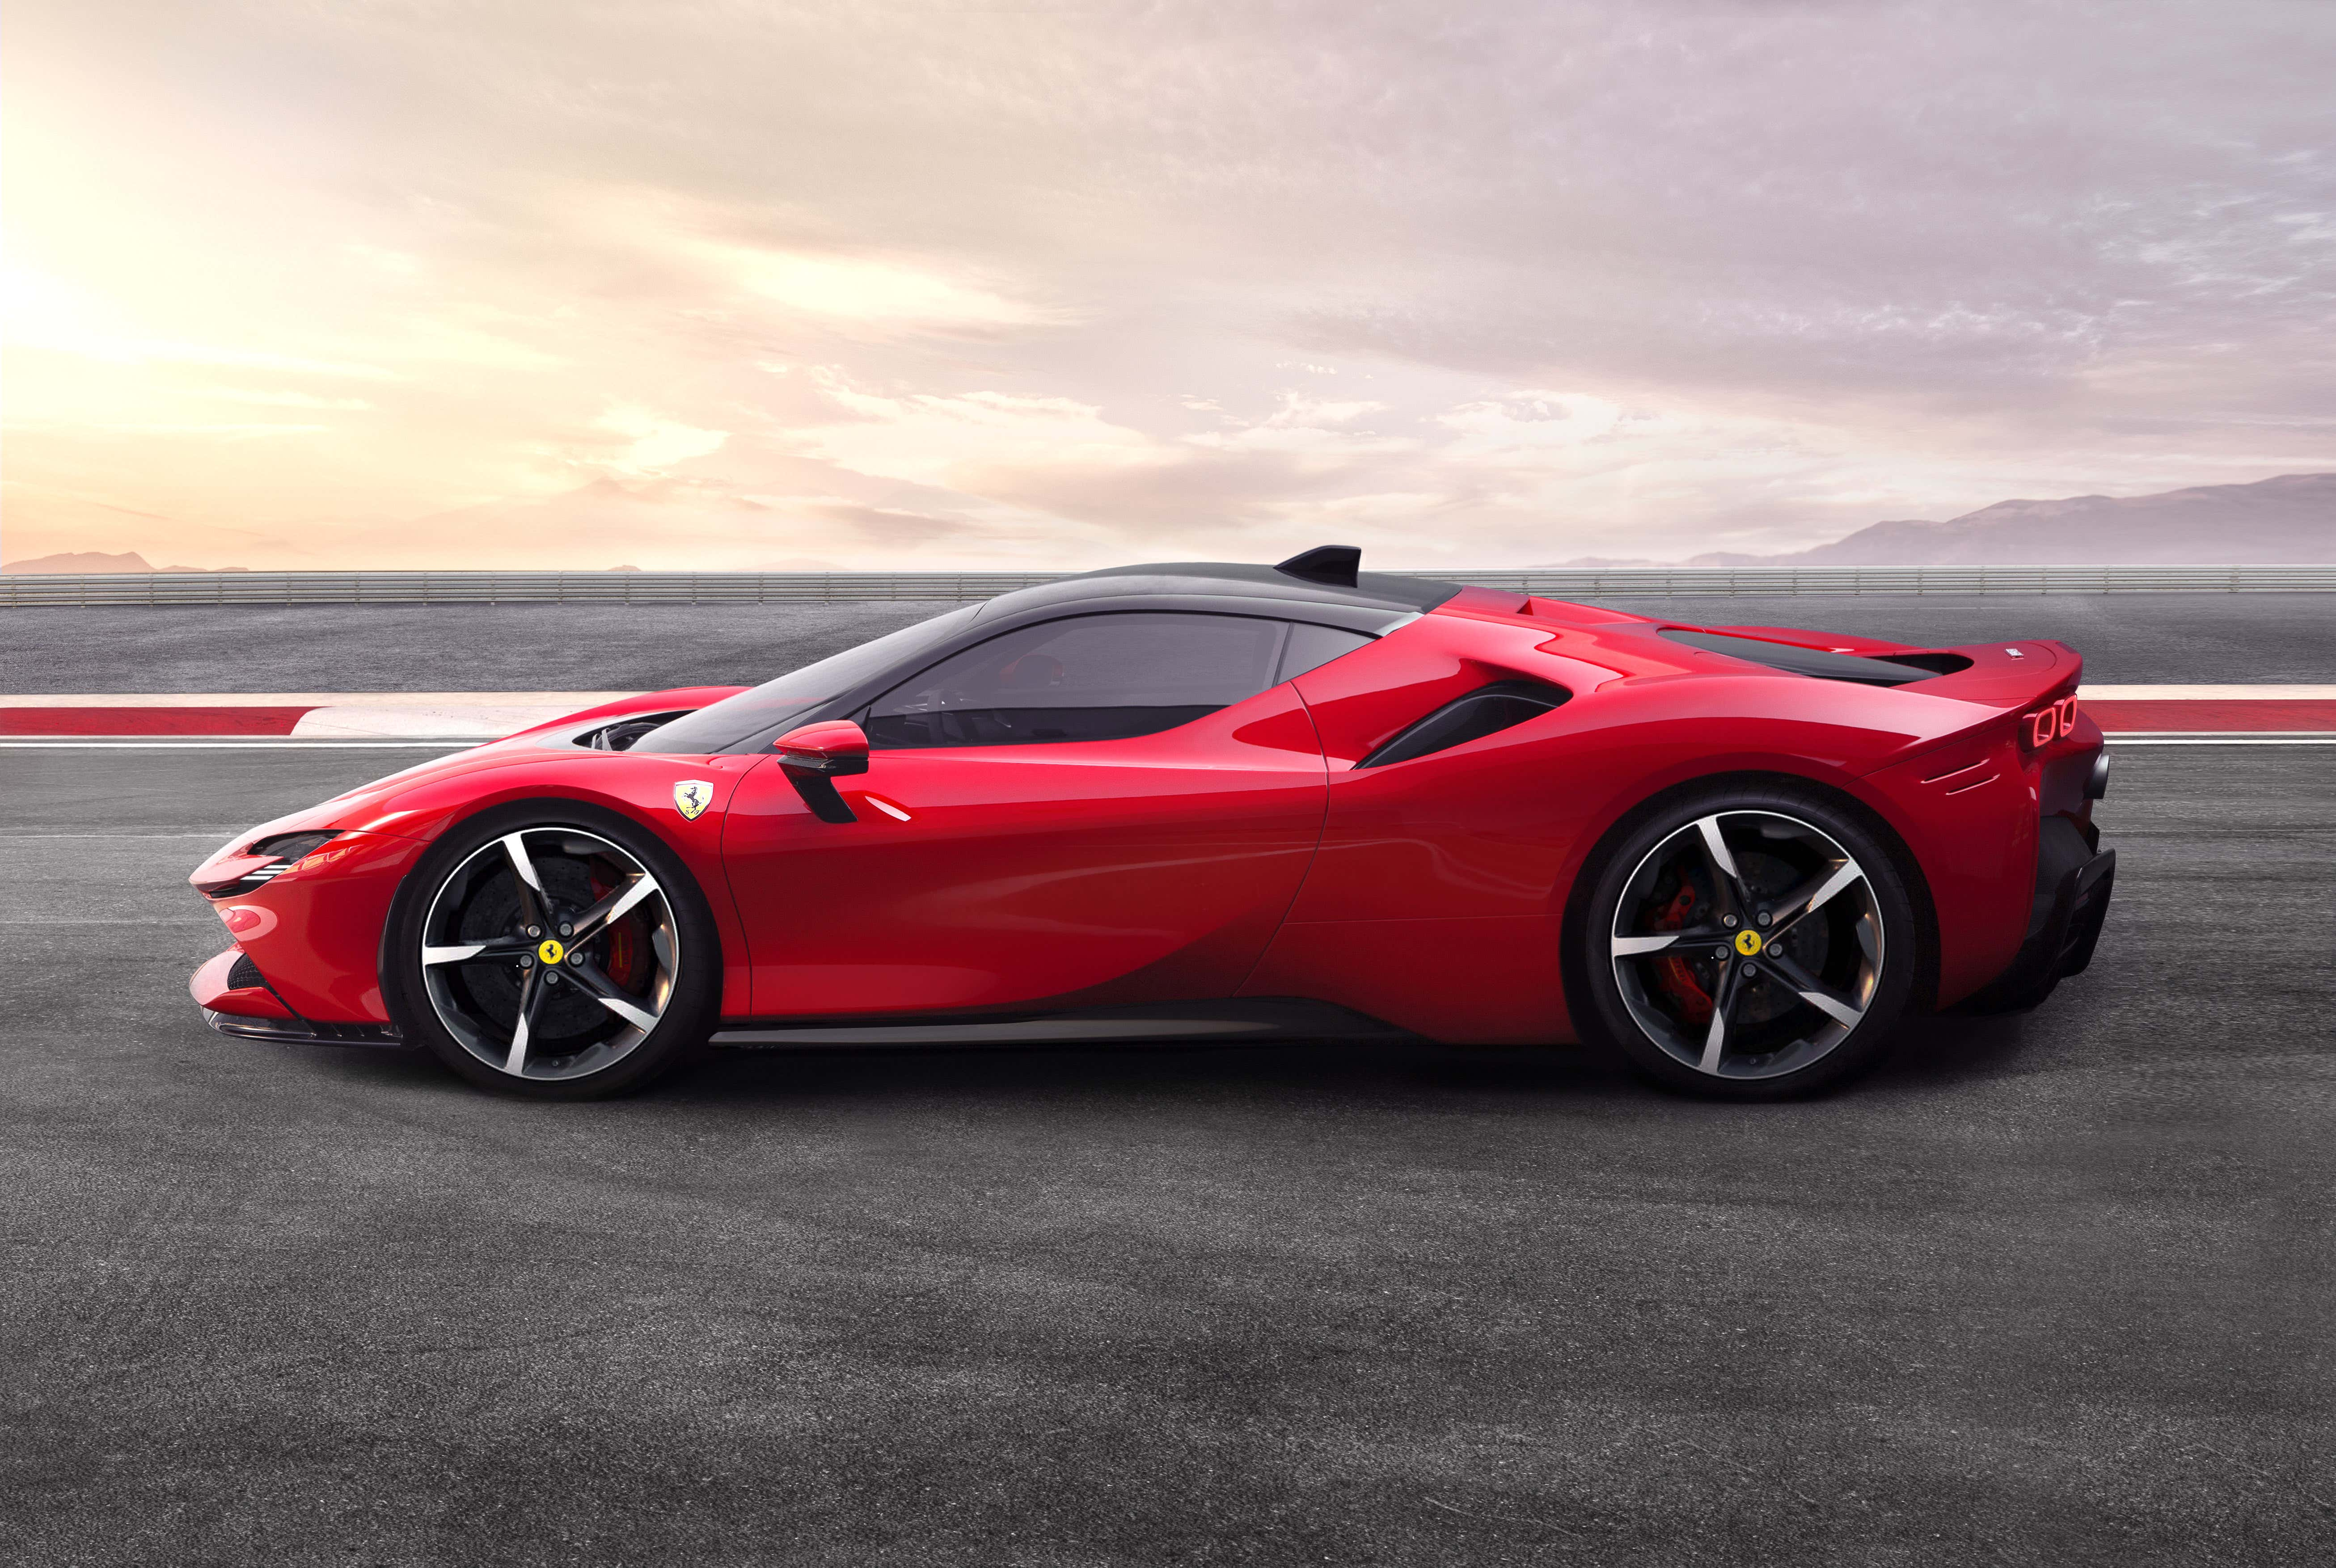 Ferrari To Focus On Current Vehicle Lineup Rather Than Launch New Models In 2020